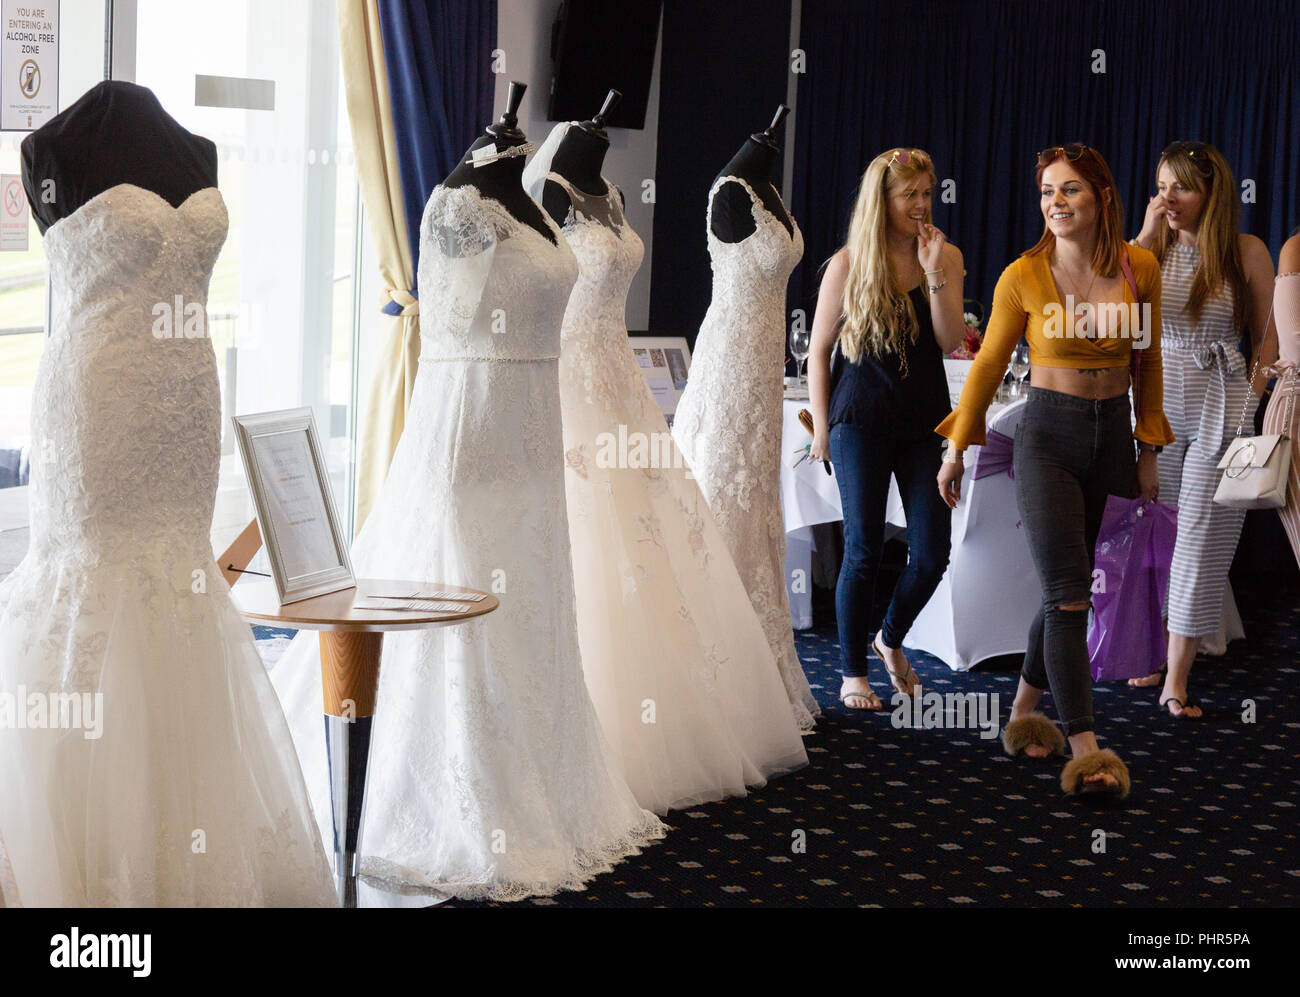 women-shopping-for-wedding-dresses-at-a-wedding-fair-newmarket-suffolk-uk-PHR5PA.jpg